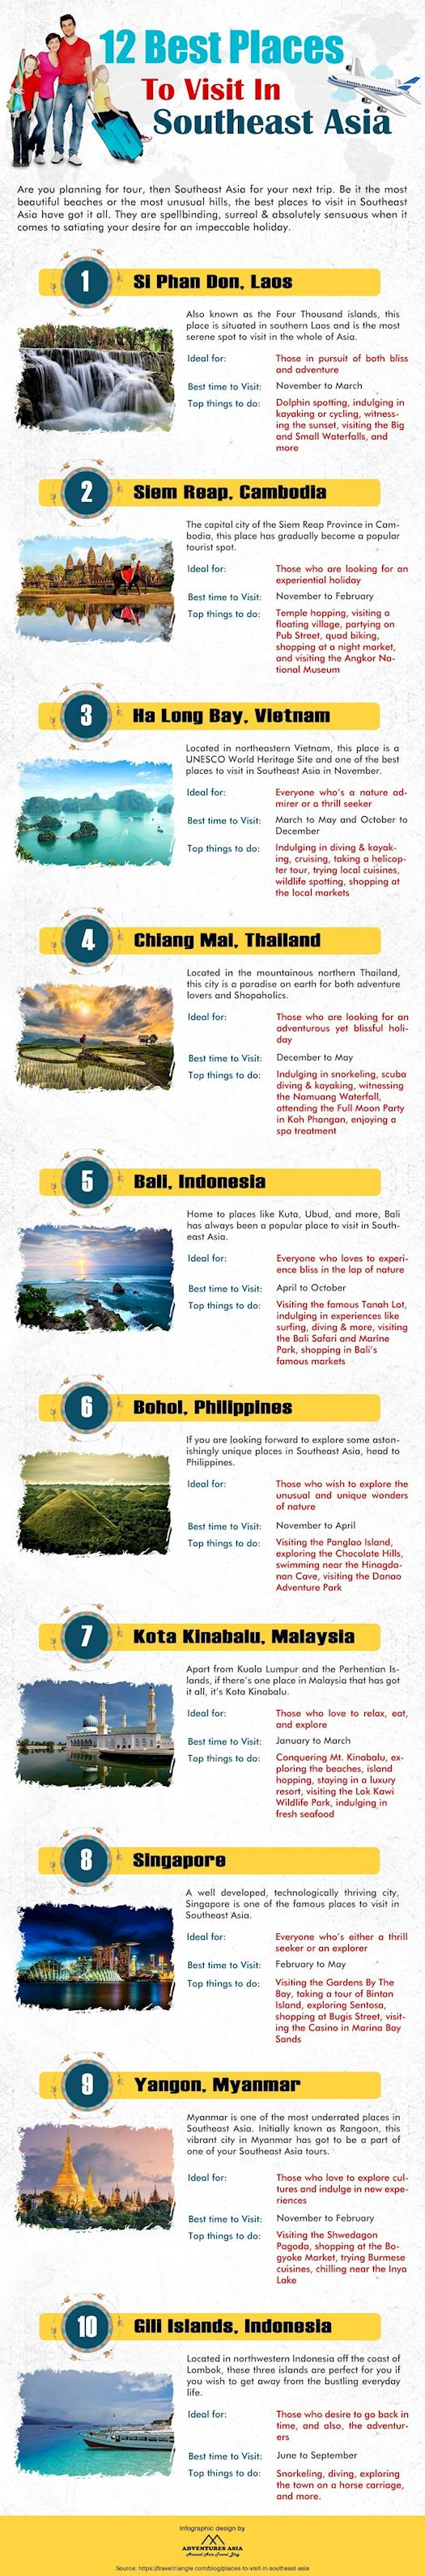 Adventures Asia - Around Asia Travel Blog [INFOGRAPHIC]